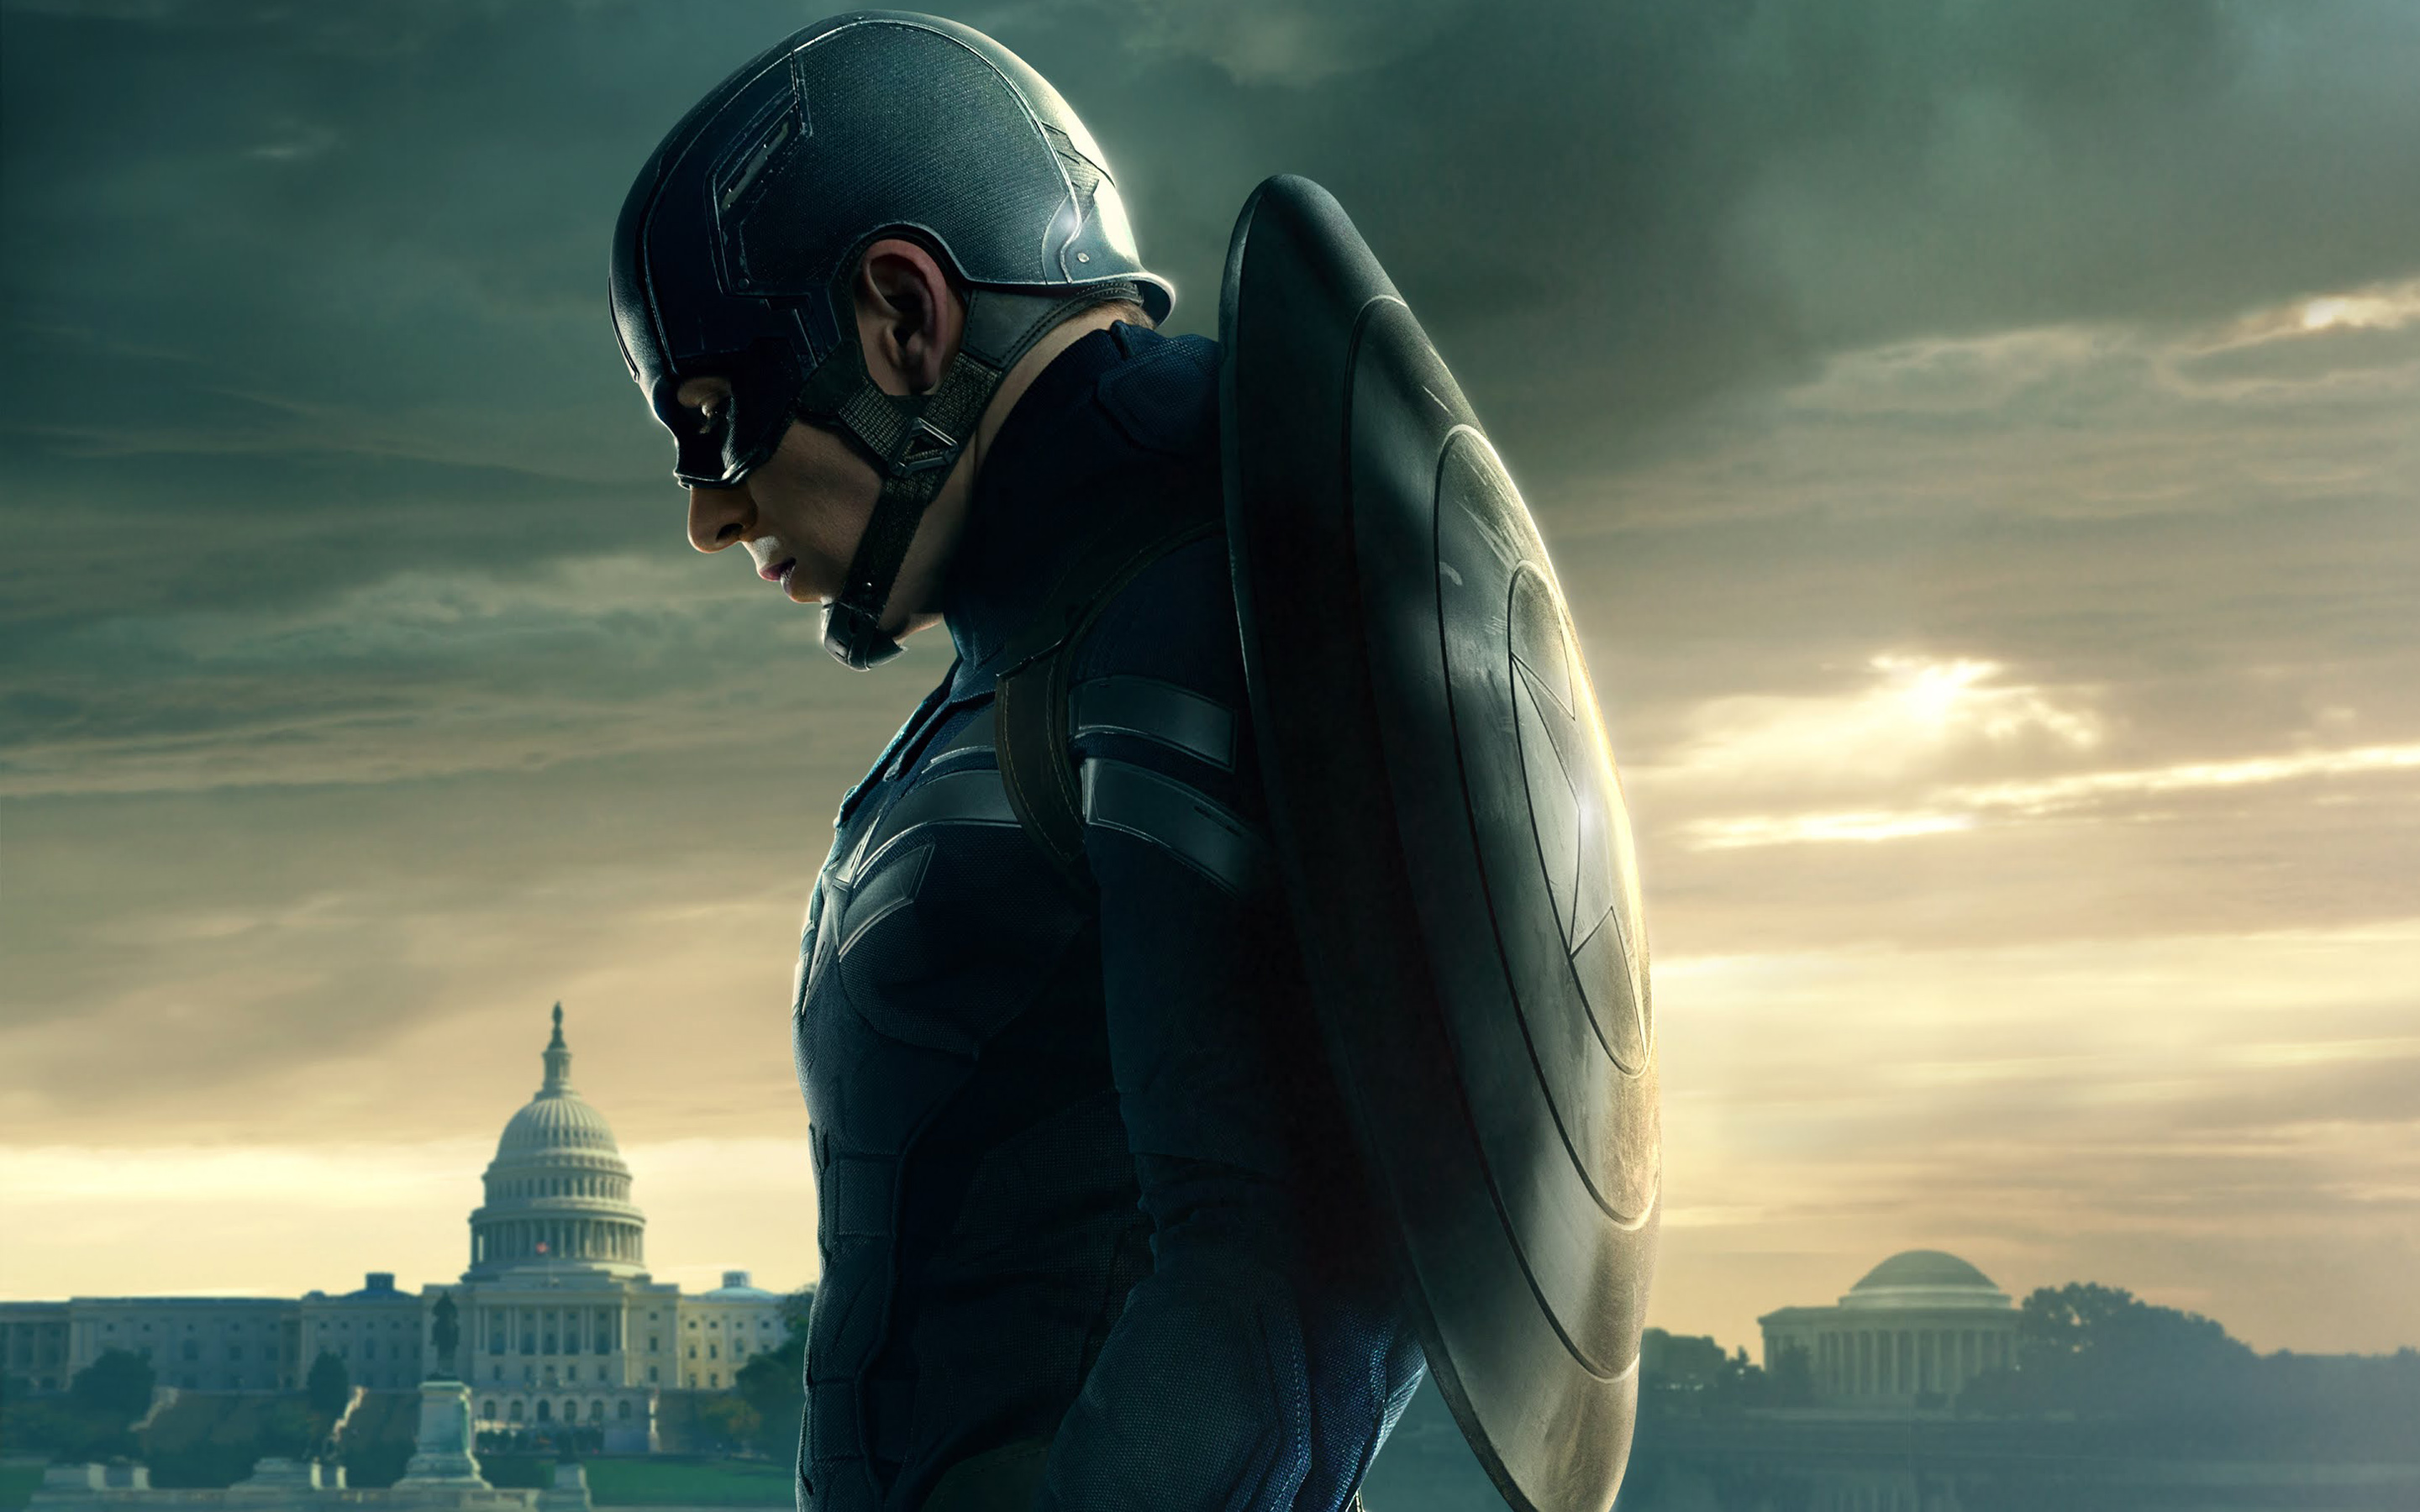 Captain America 2014 Exclusive HD Wallpapers 6345 2880x1800